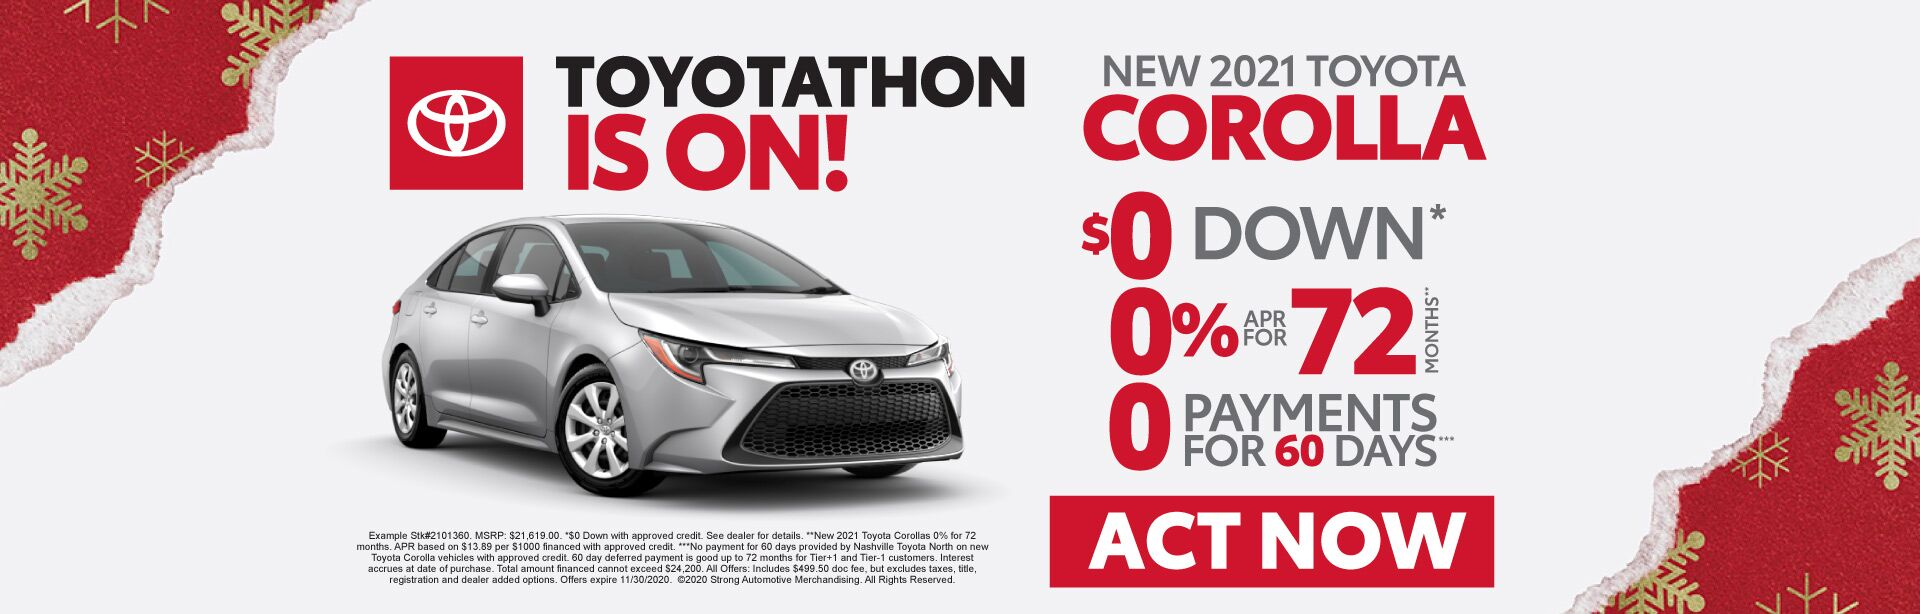 New 2021 Toyota Corolla - $0 Down, 0% for 72 months, 0 Payments for 60 days - Act Now